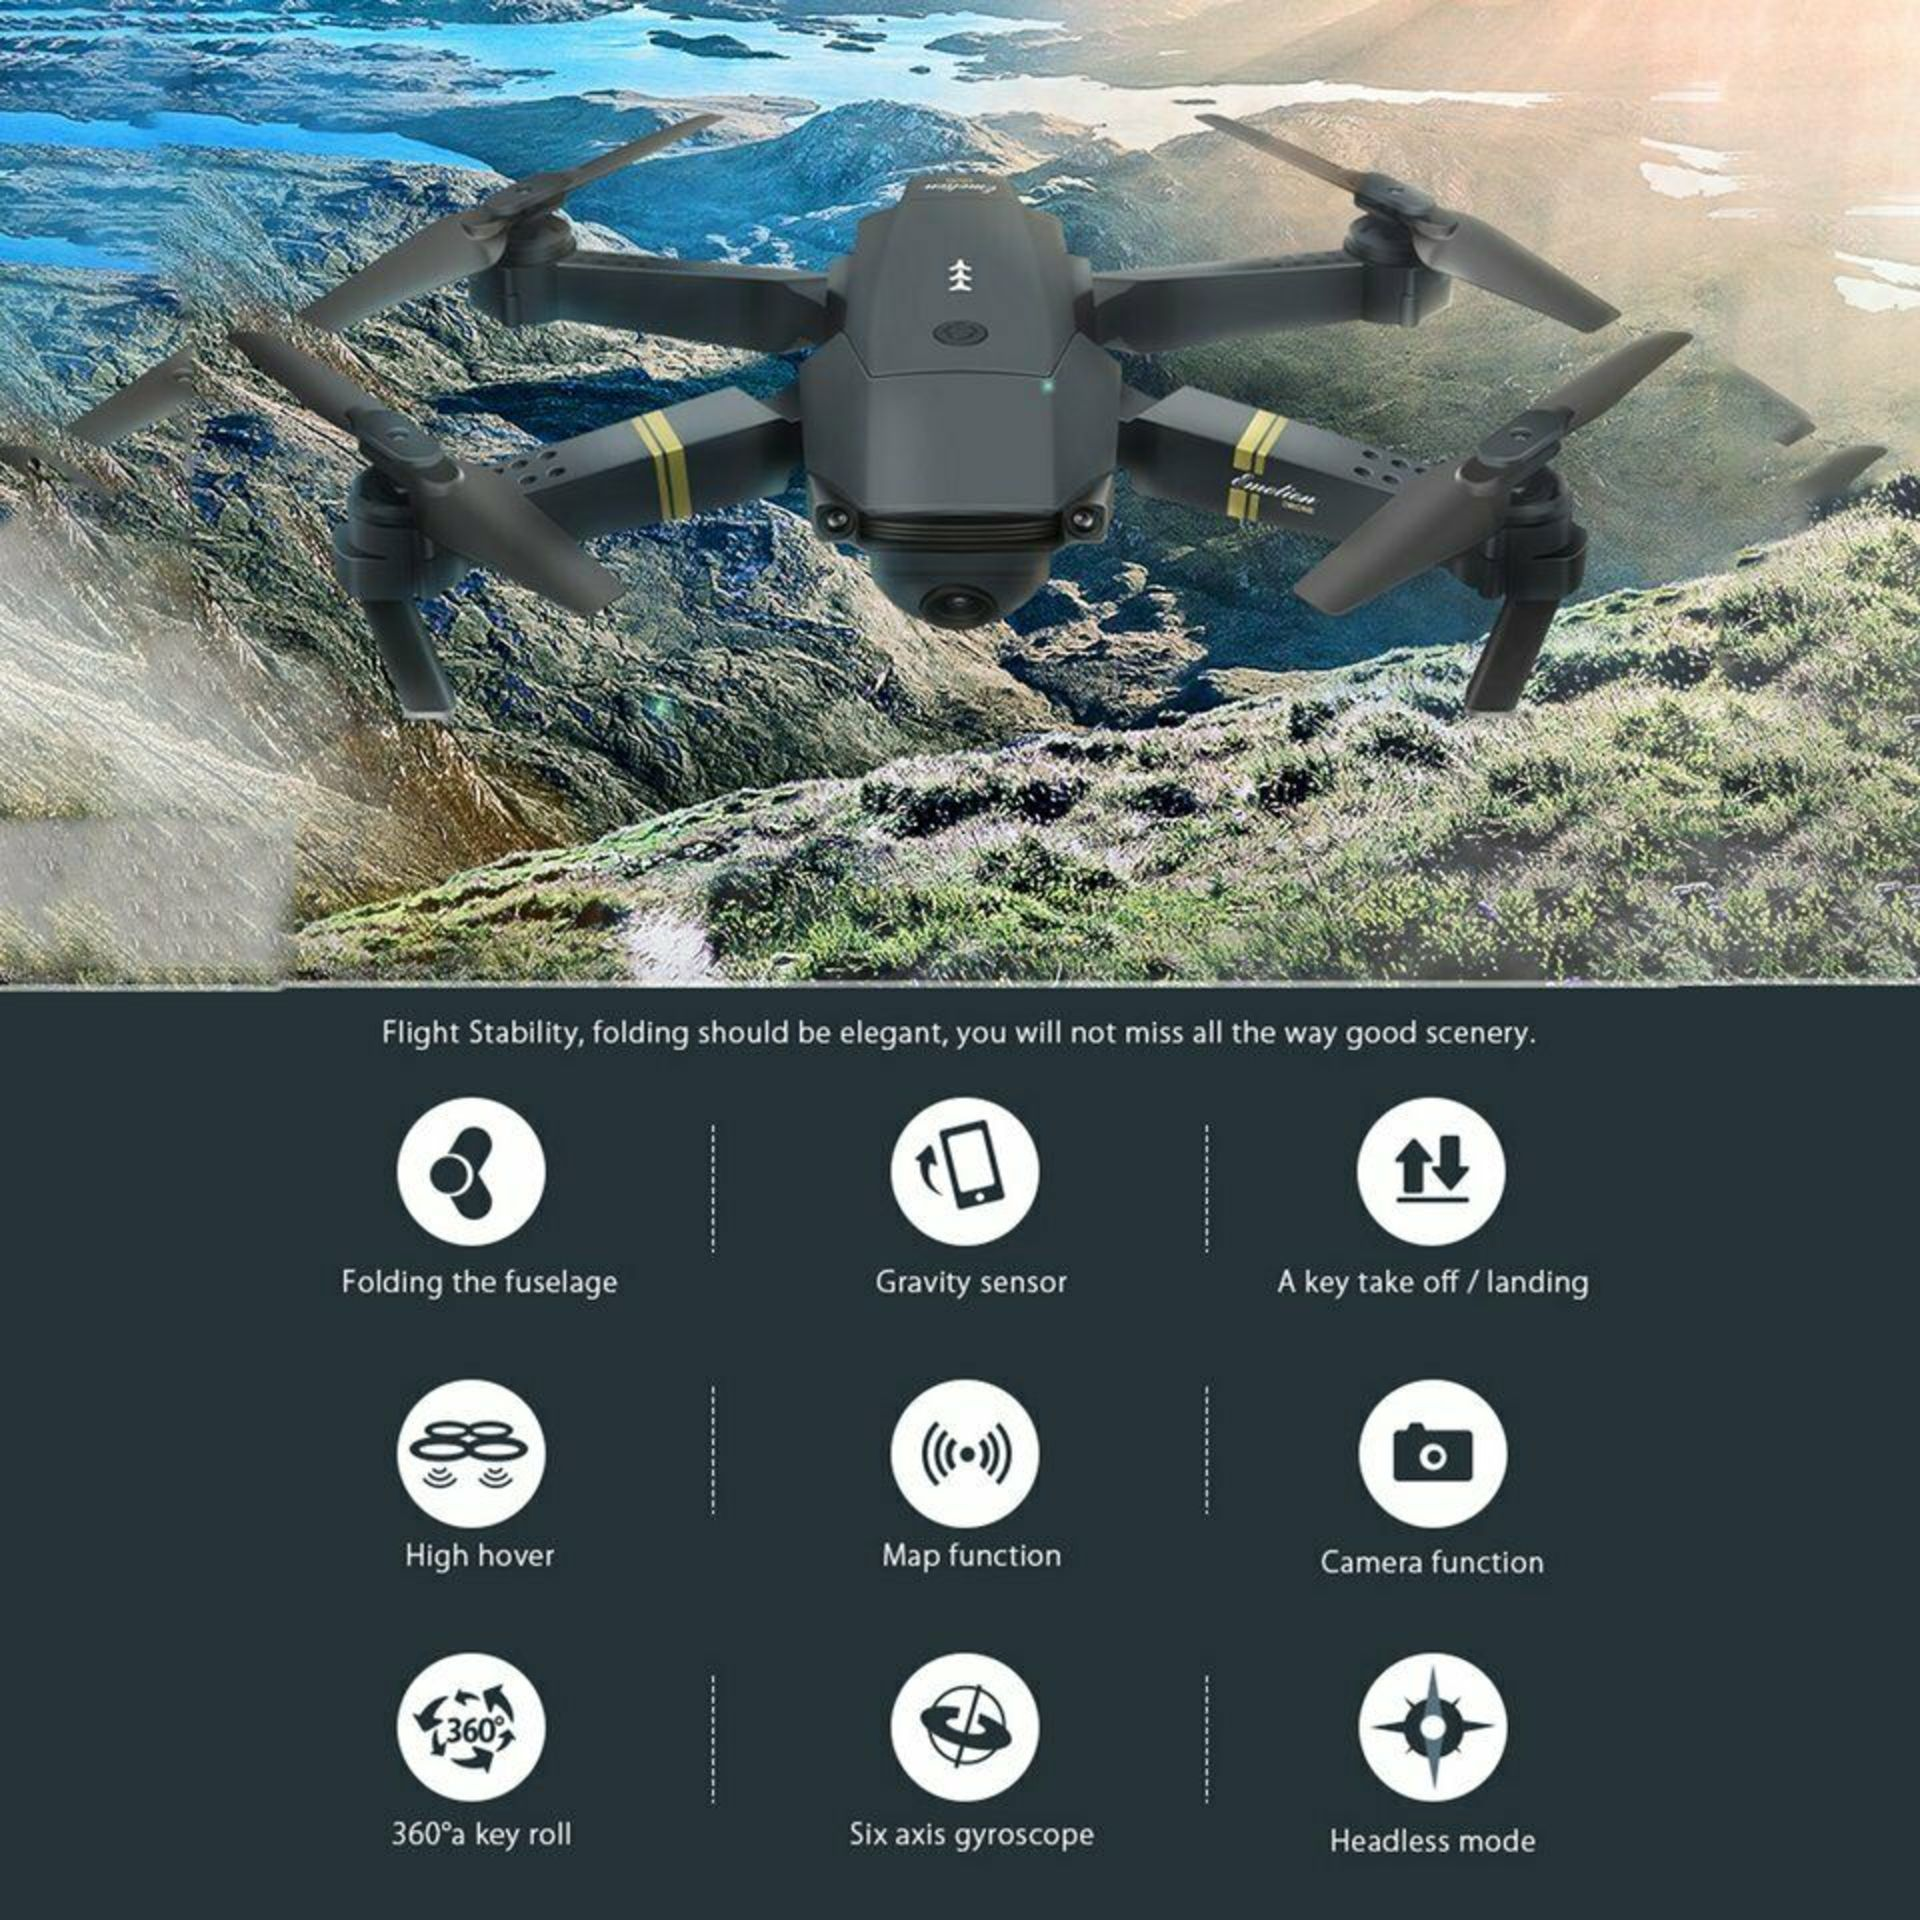 NEW & UNUSED DRONE X PRO WIFI FPV 1080P HD CAMERA FOLDABLE RC QUADCOPTER + BAG *PLUS VAT* - Image 2 of 12